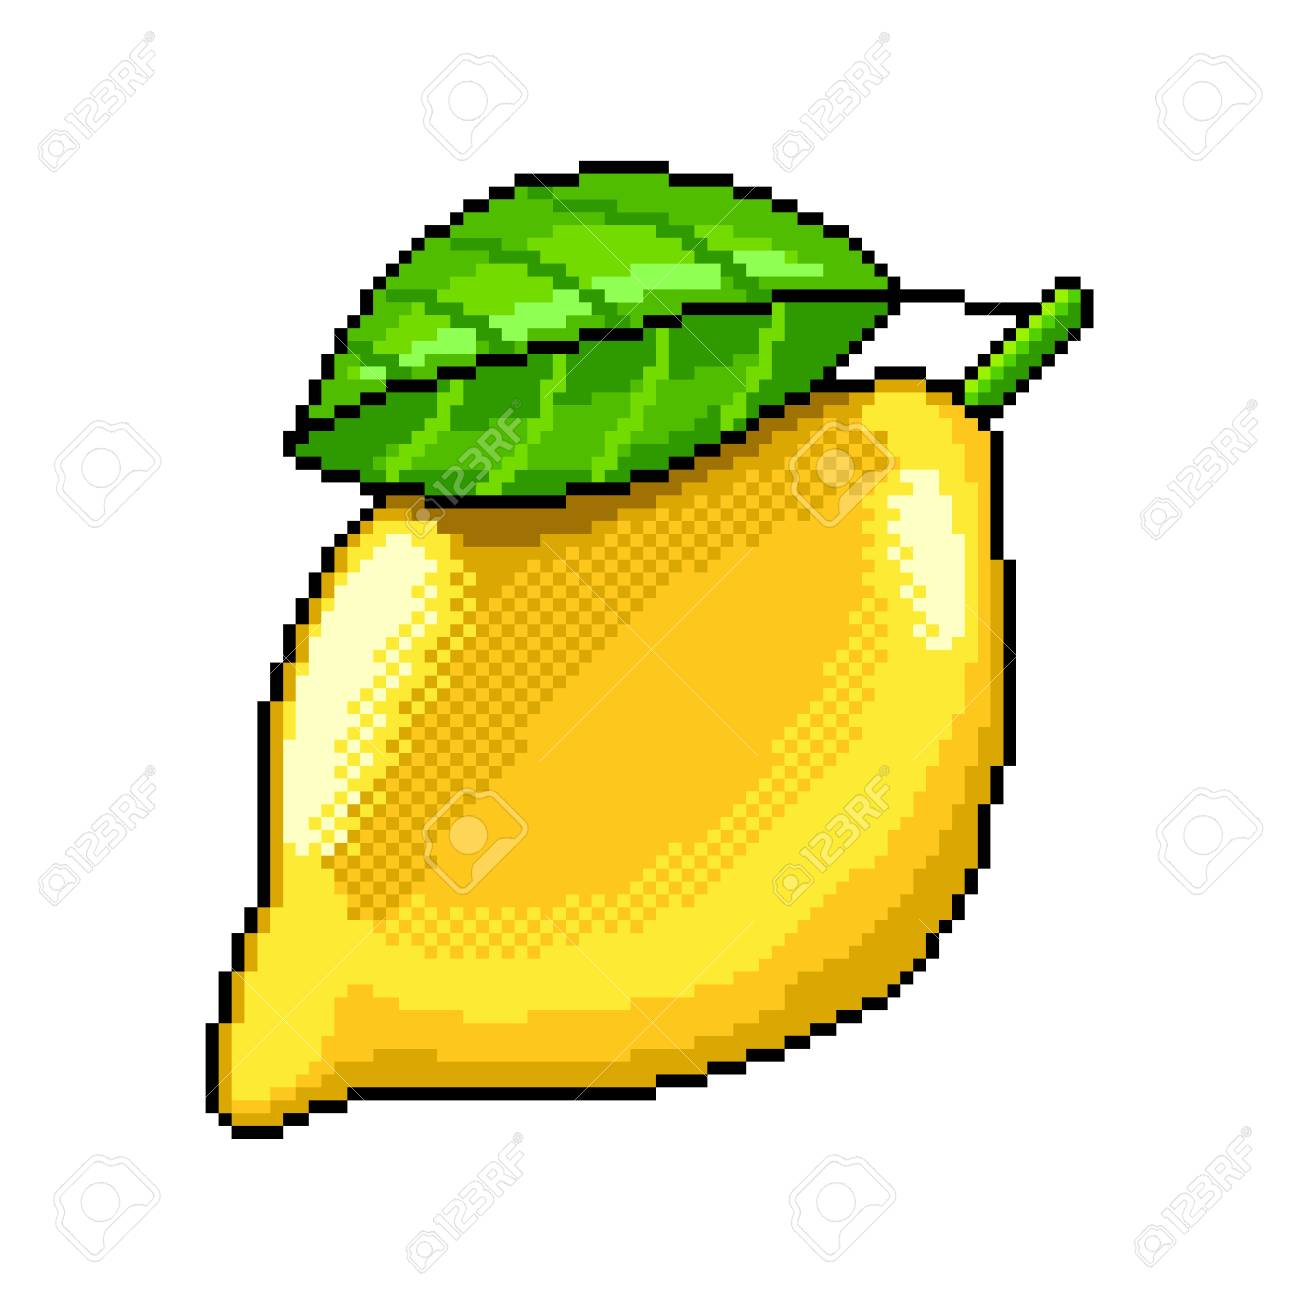 Pixel Art Lemon Fruit Detailed Illustration Isolated Vector